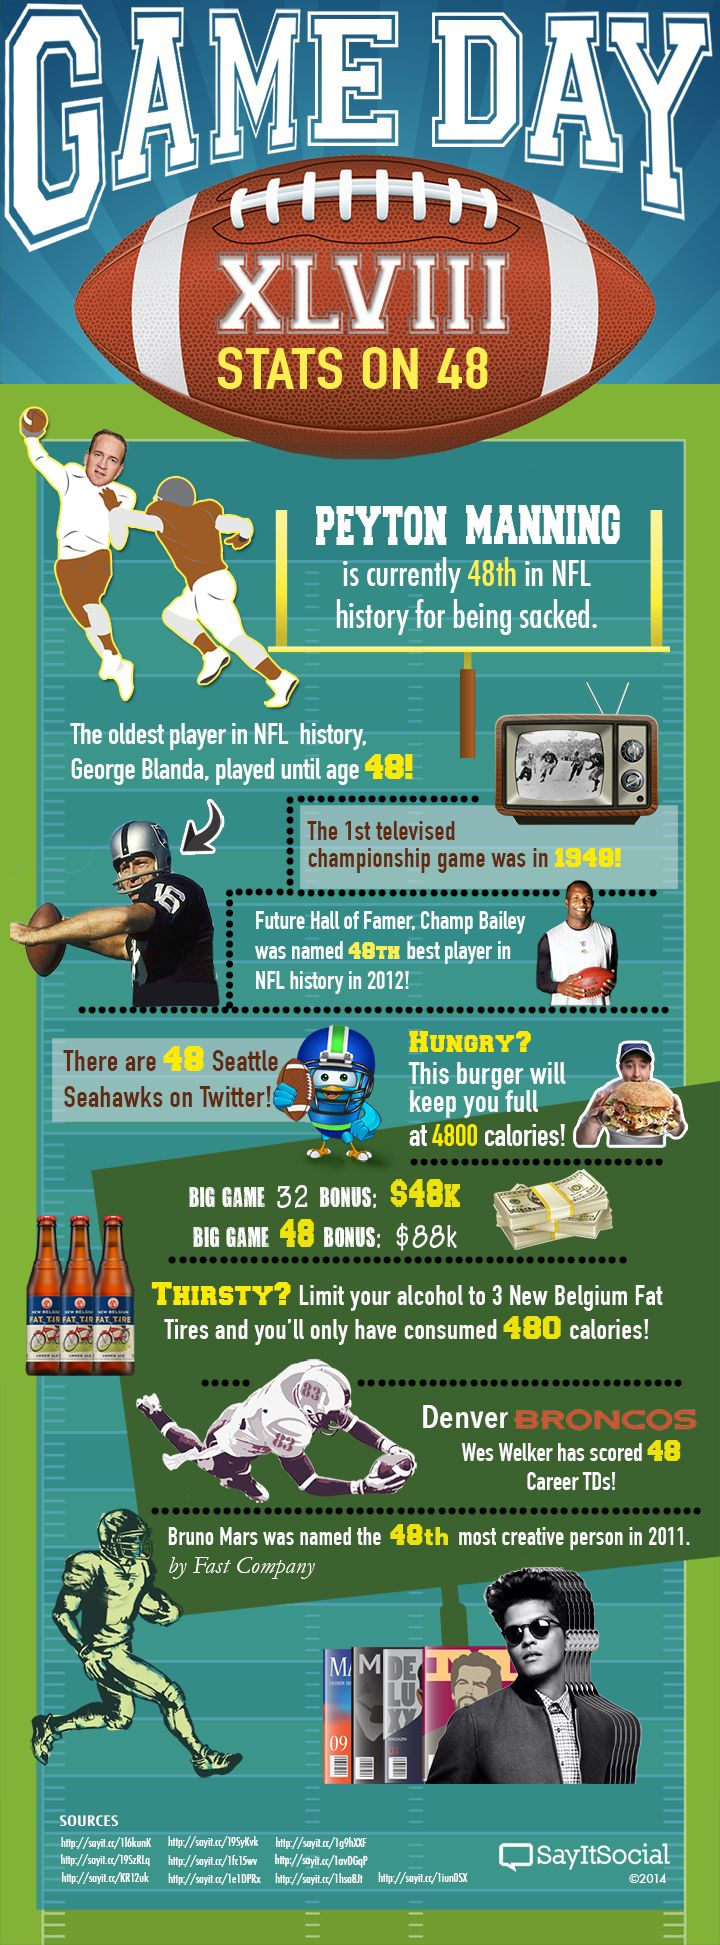 [INFOGRAPHIC] Super Bowl XLVIII - The 10 Stats to know about The 48th Big game!  #SuperBowlXLVIII #Infographic #Broncos #Seahawks